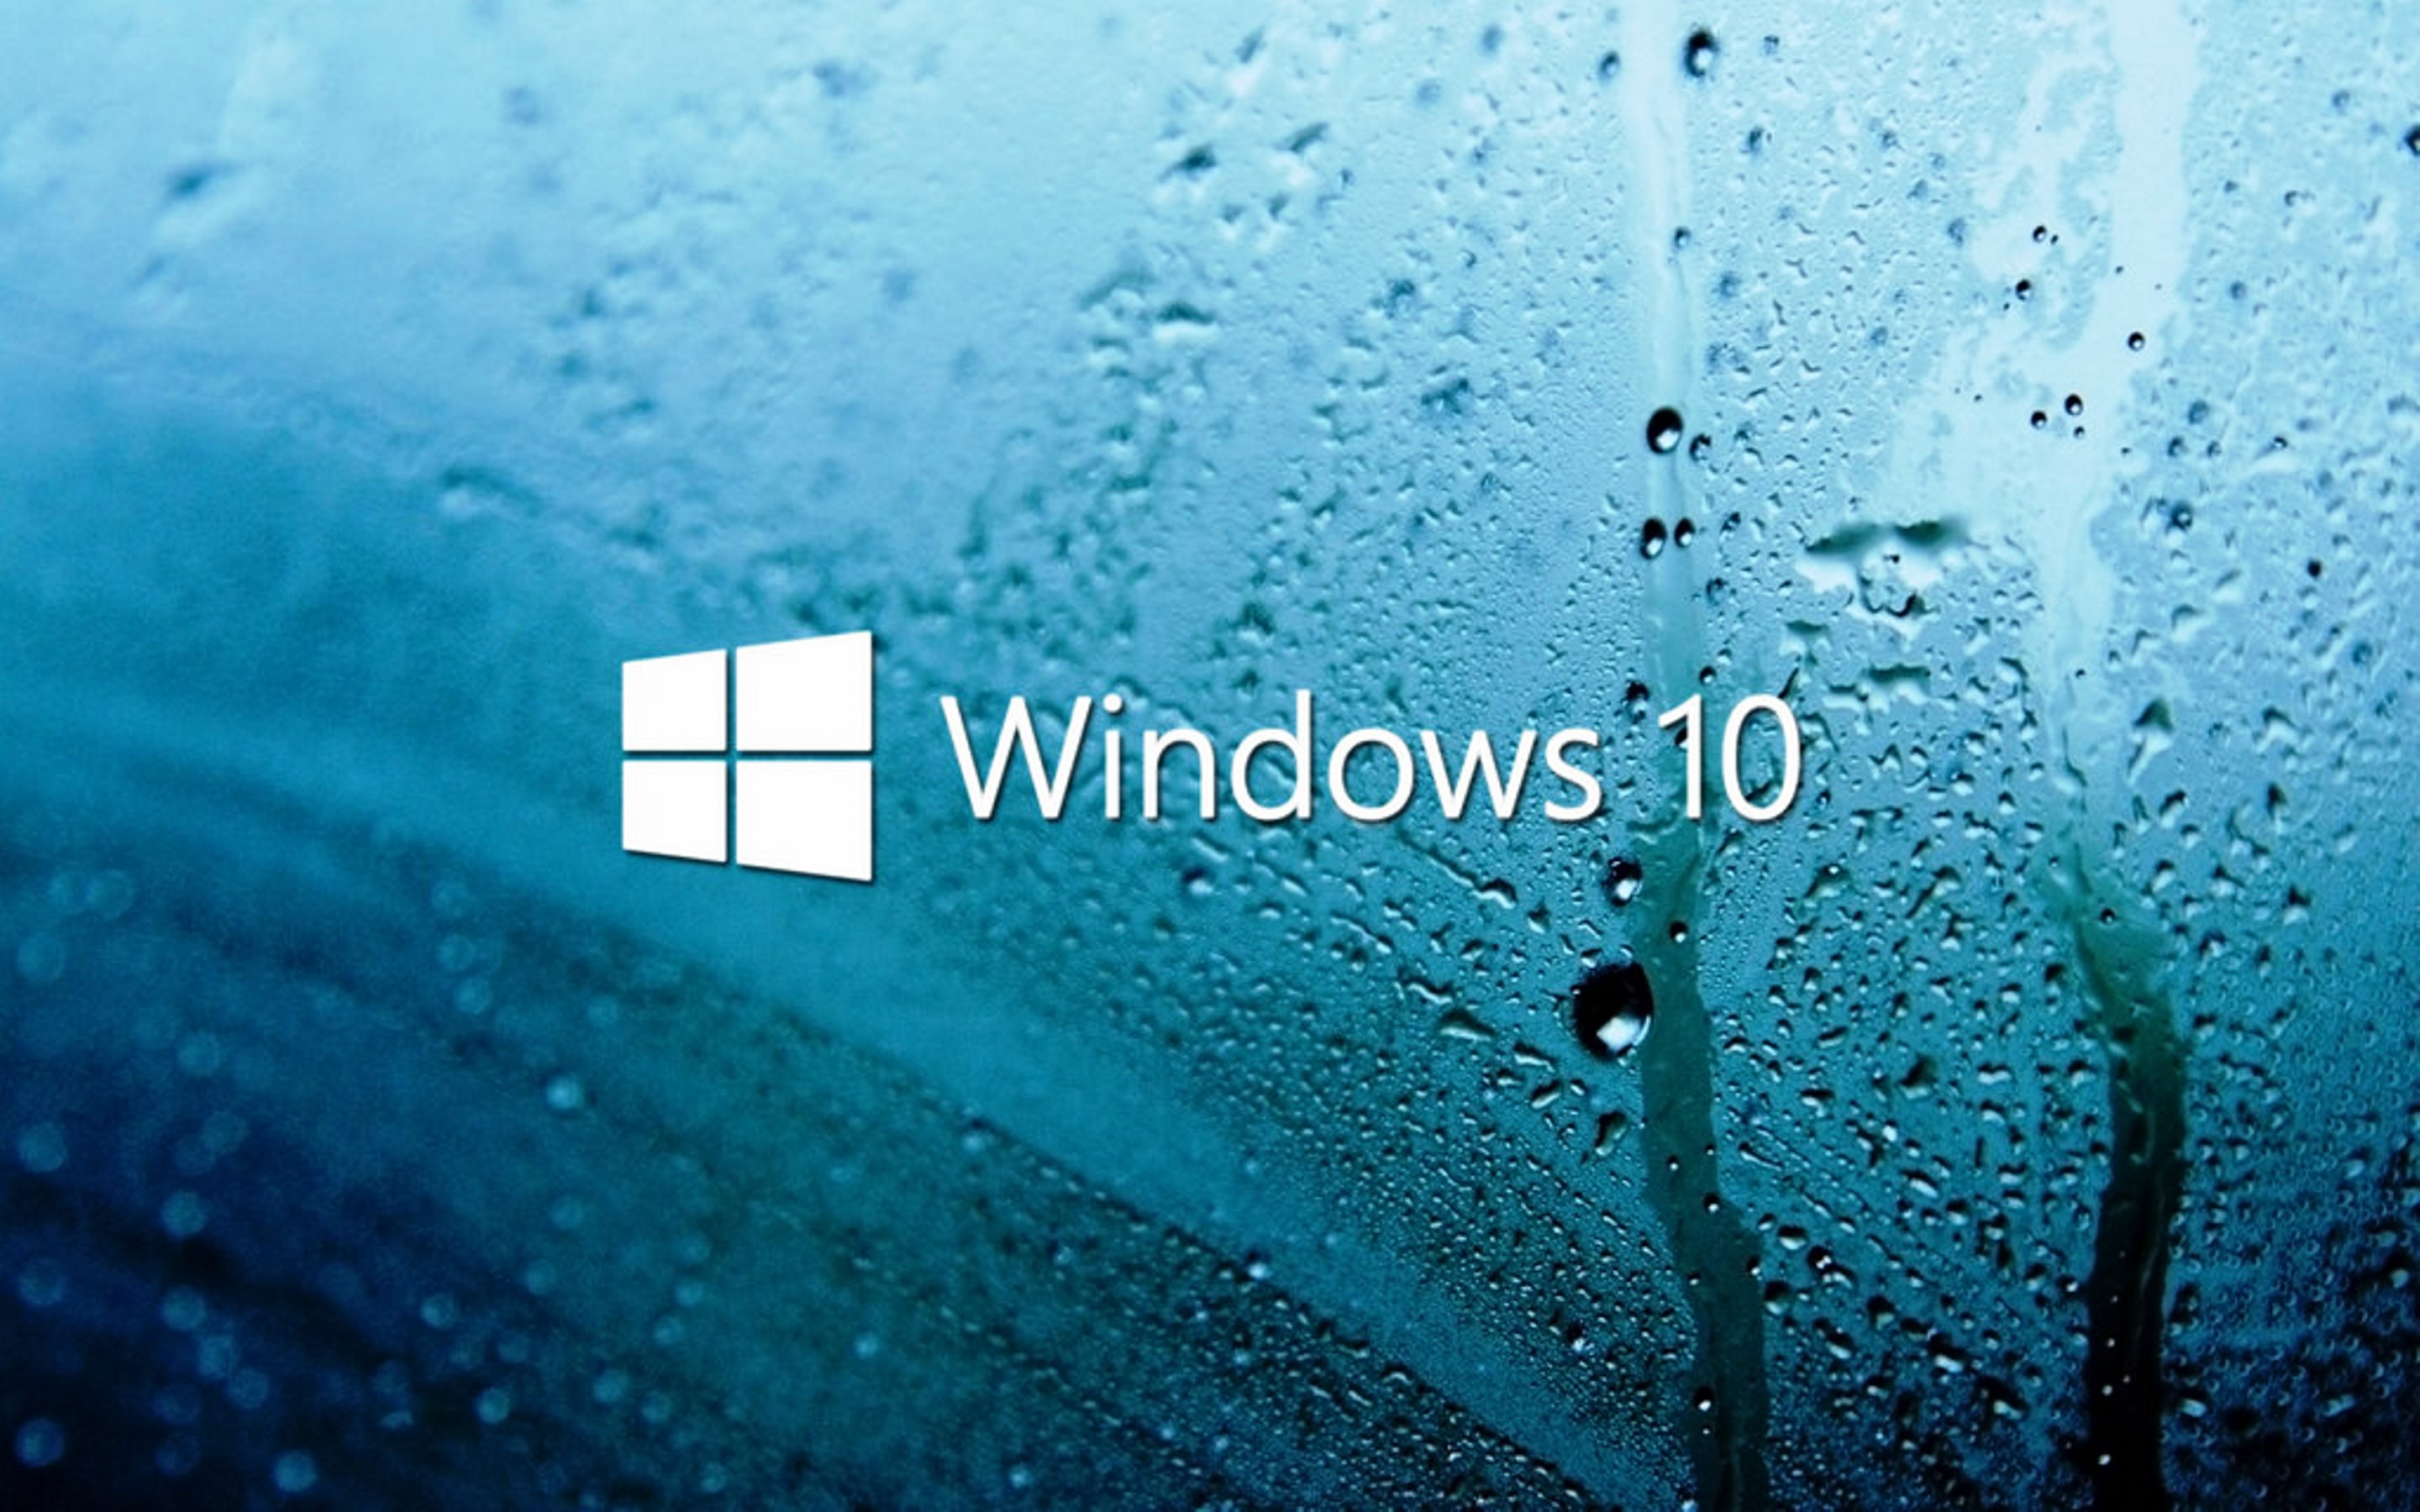 Best Windows 10 Hd Wallpaper Mytechshout